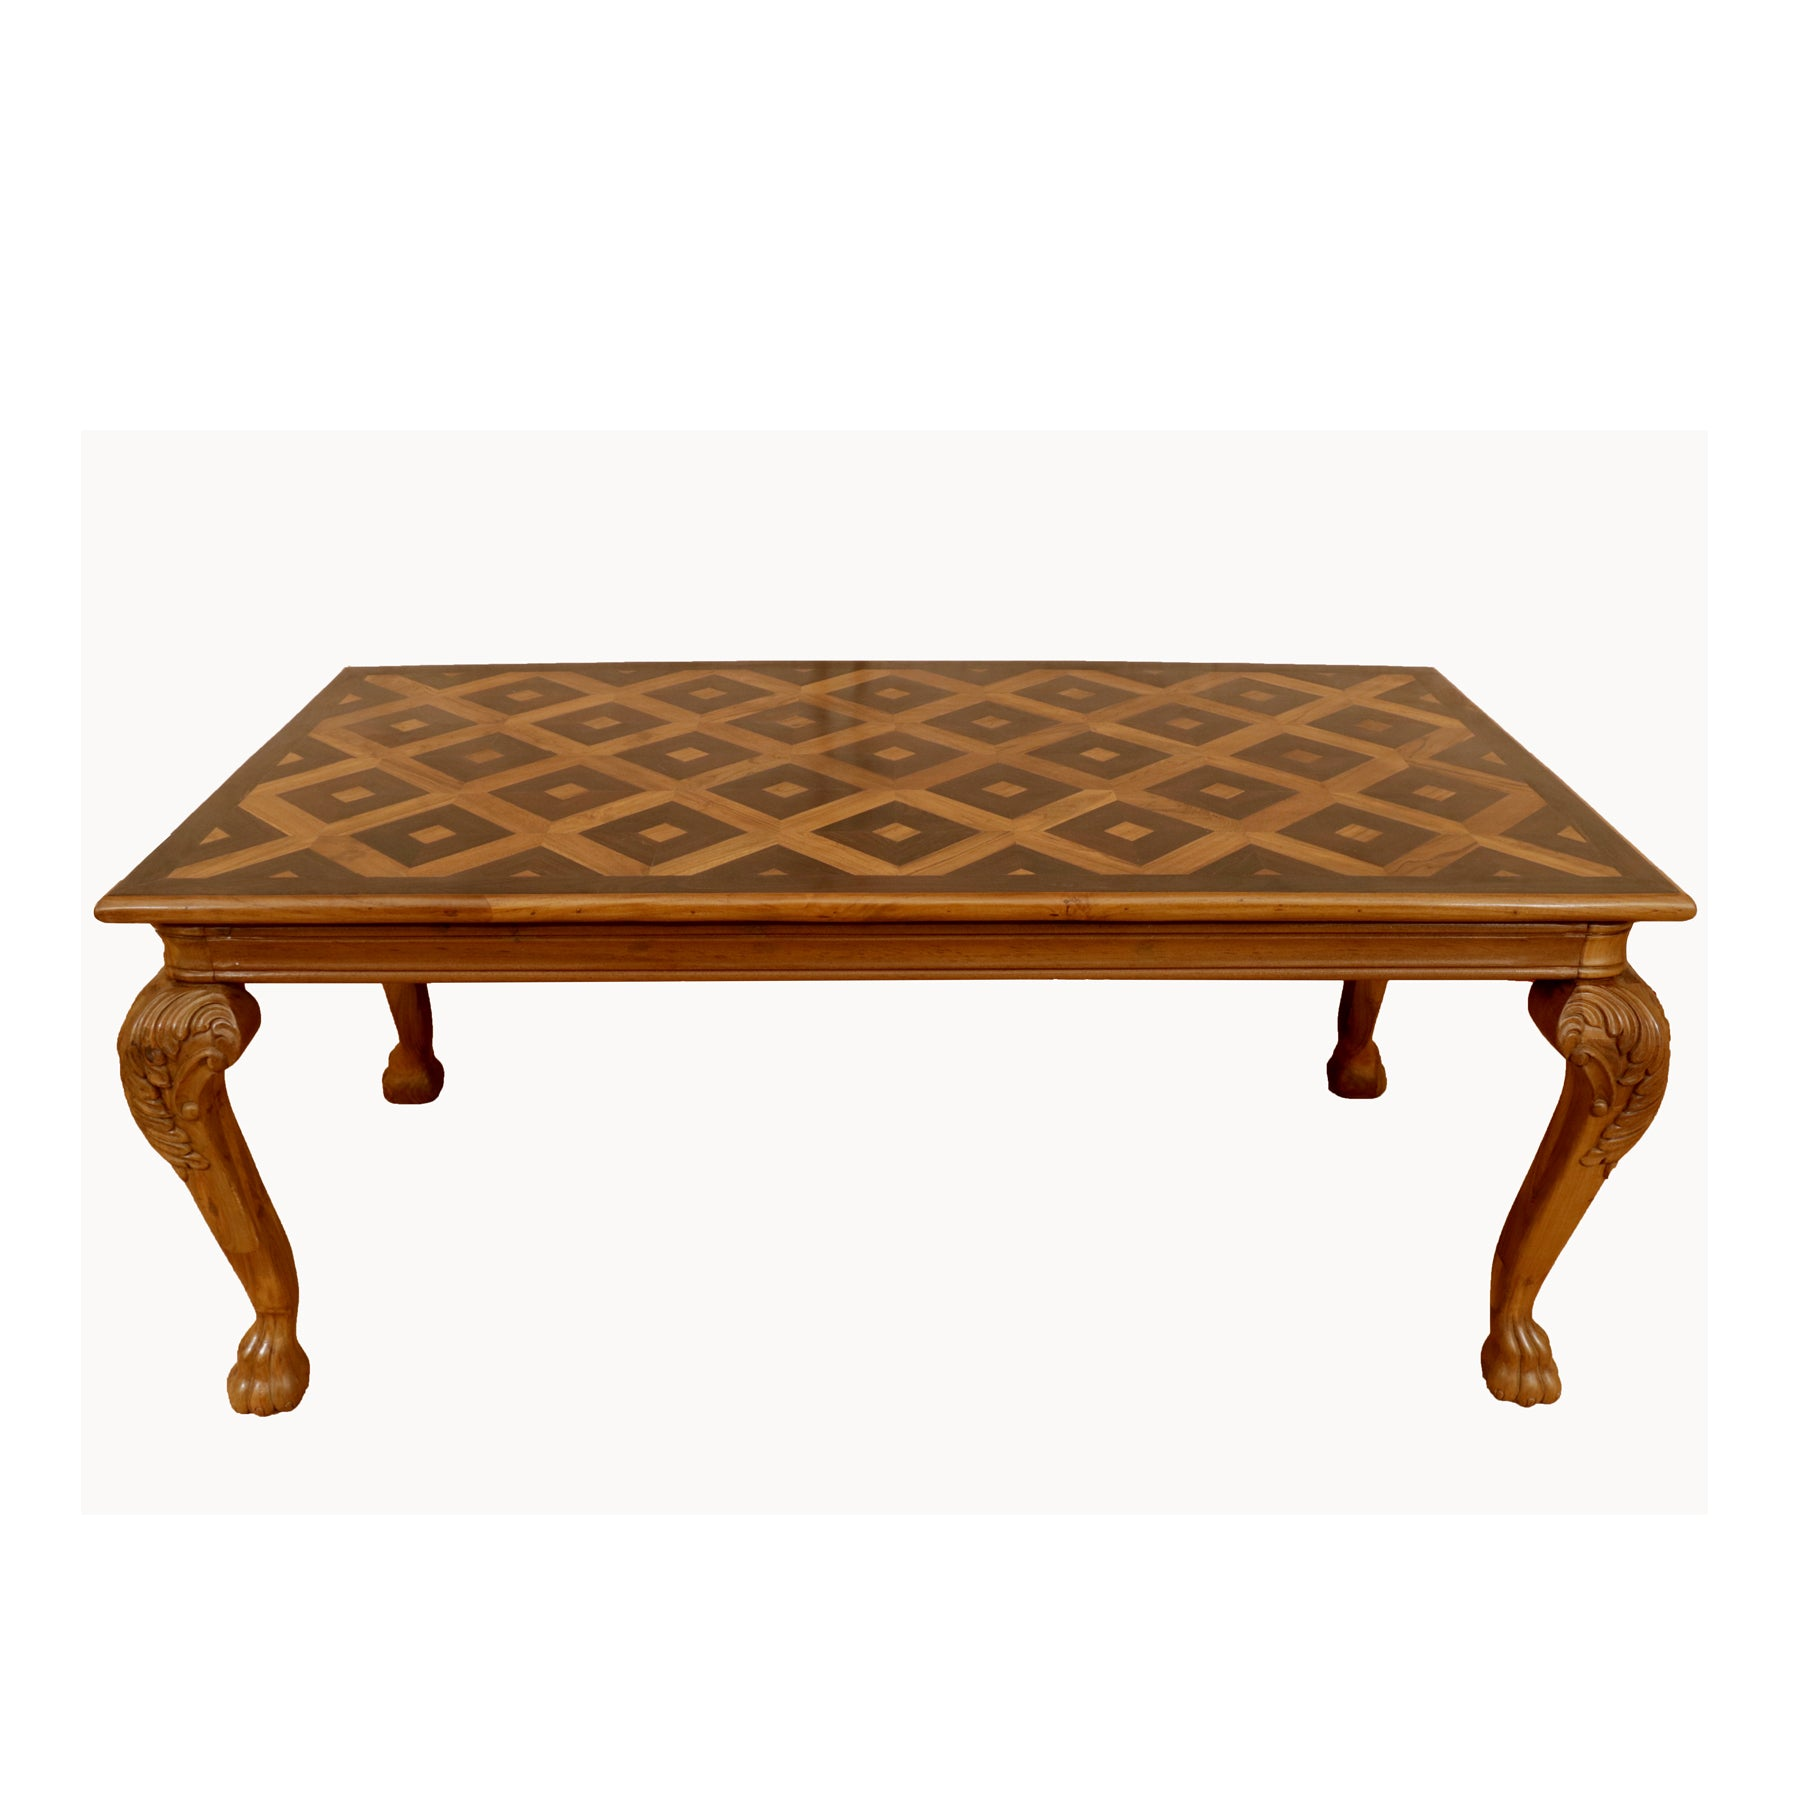 Teak Wood Inlay design Large Dinning Table